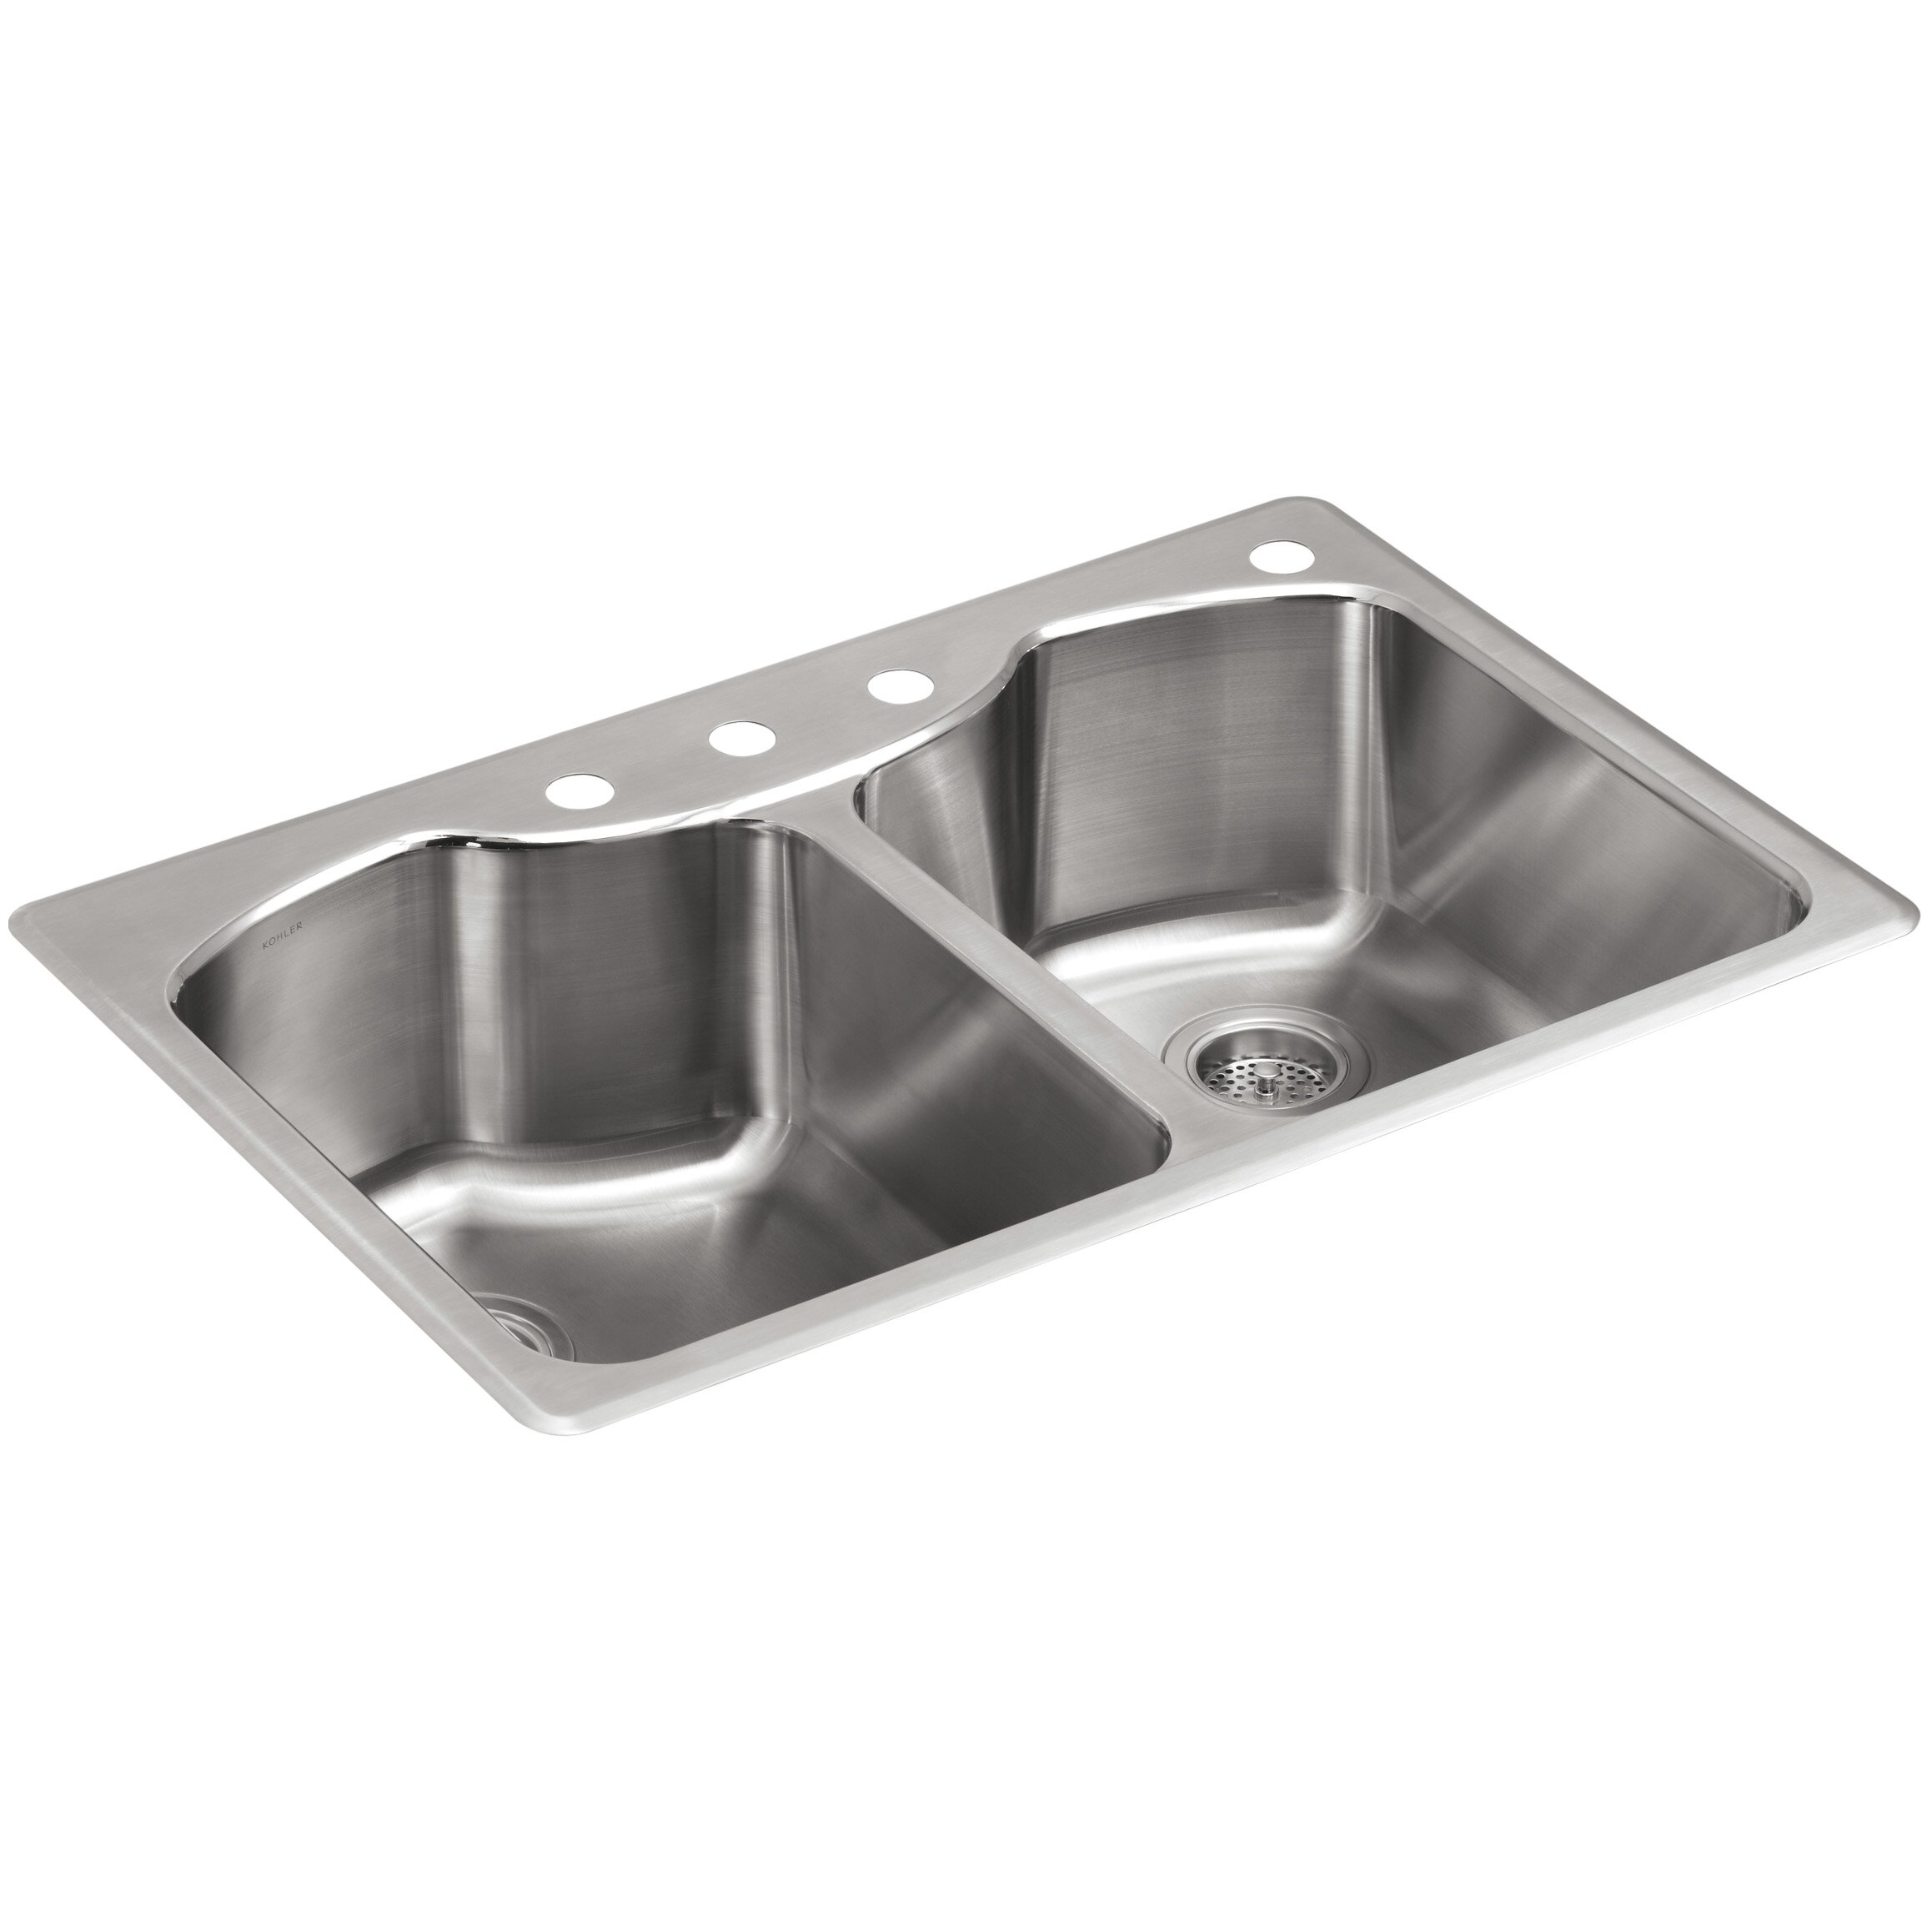 Best Rated Stainless Steel Sinks : Remodel Sinks Kitchen Sinks Kohler Part #: K-3842-4 SKU: KOH20650